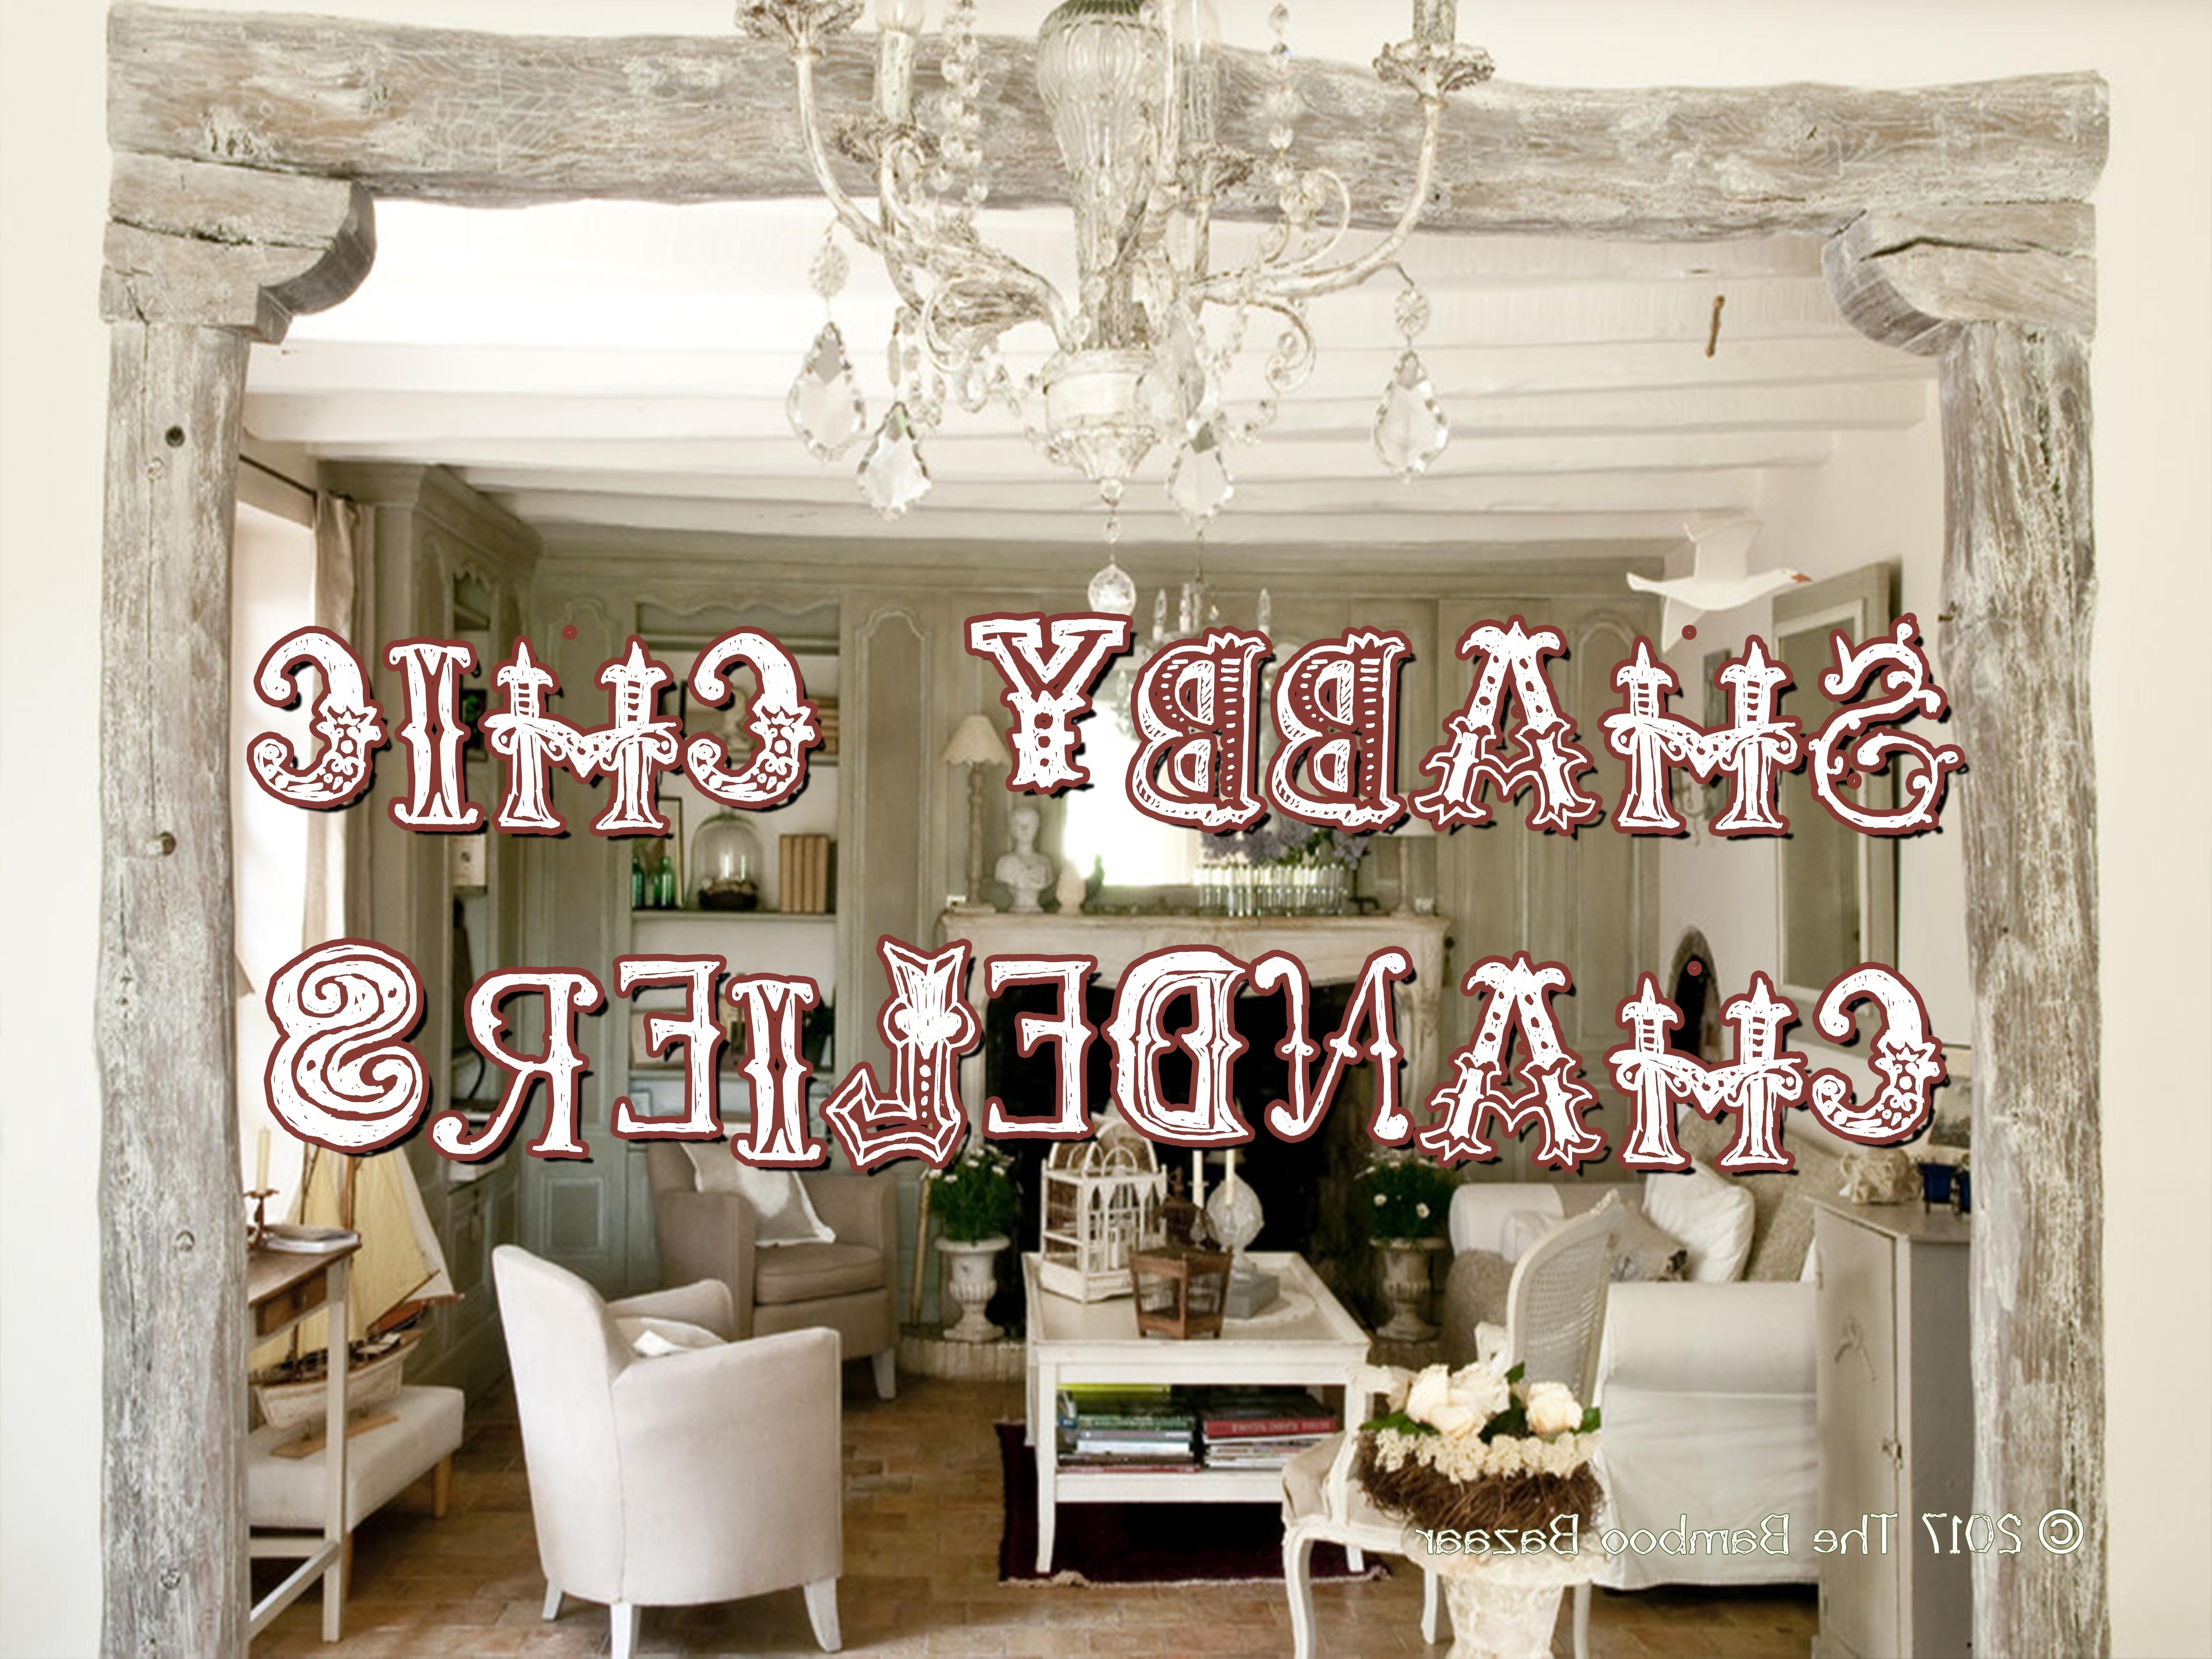 Shabby Chic Chandeliers In Most Current Rustic Shabby Chic Chandeliers, A Guide To The Best Of 2018! (View 13 of 15)